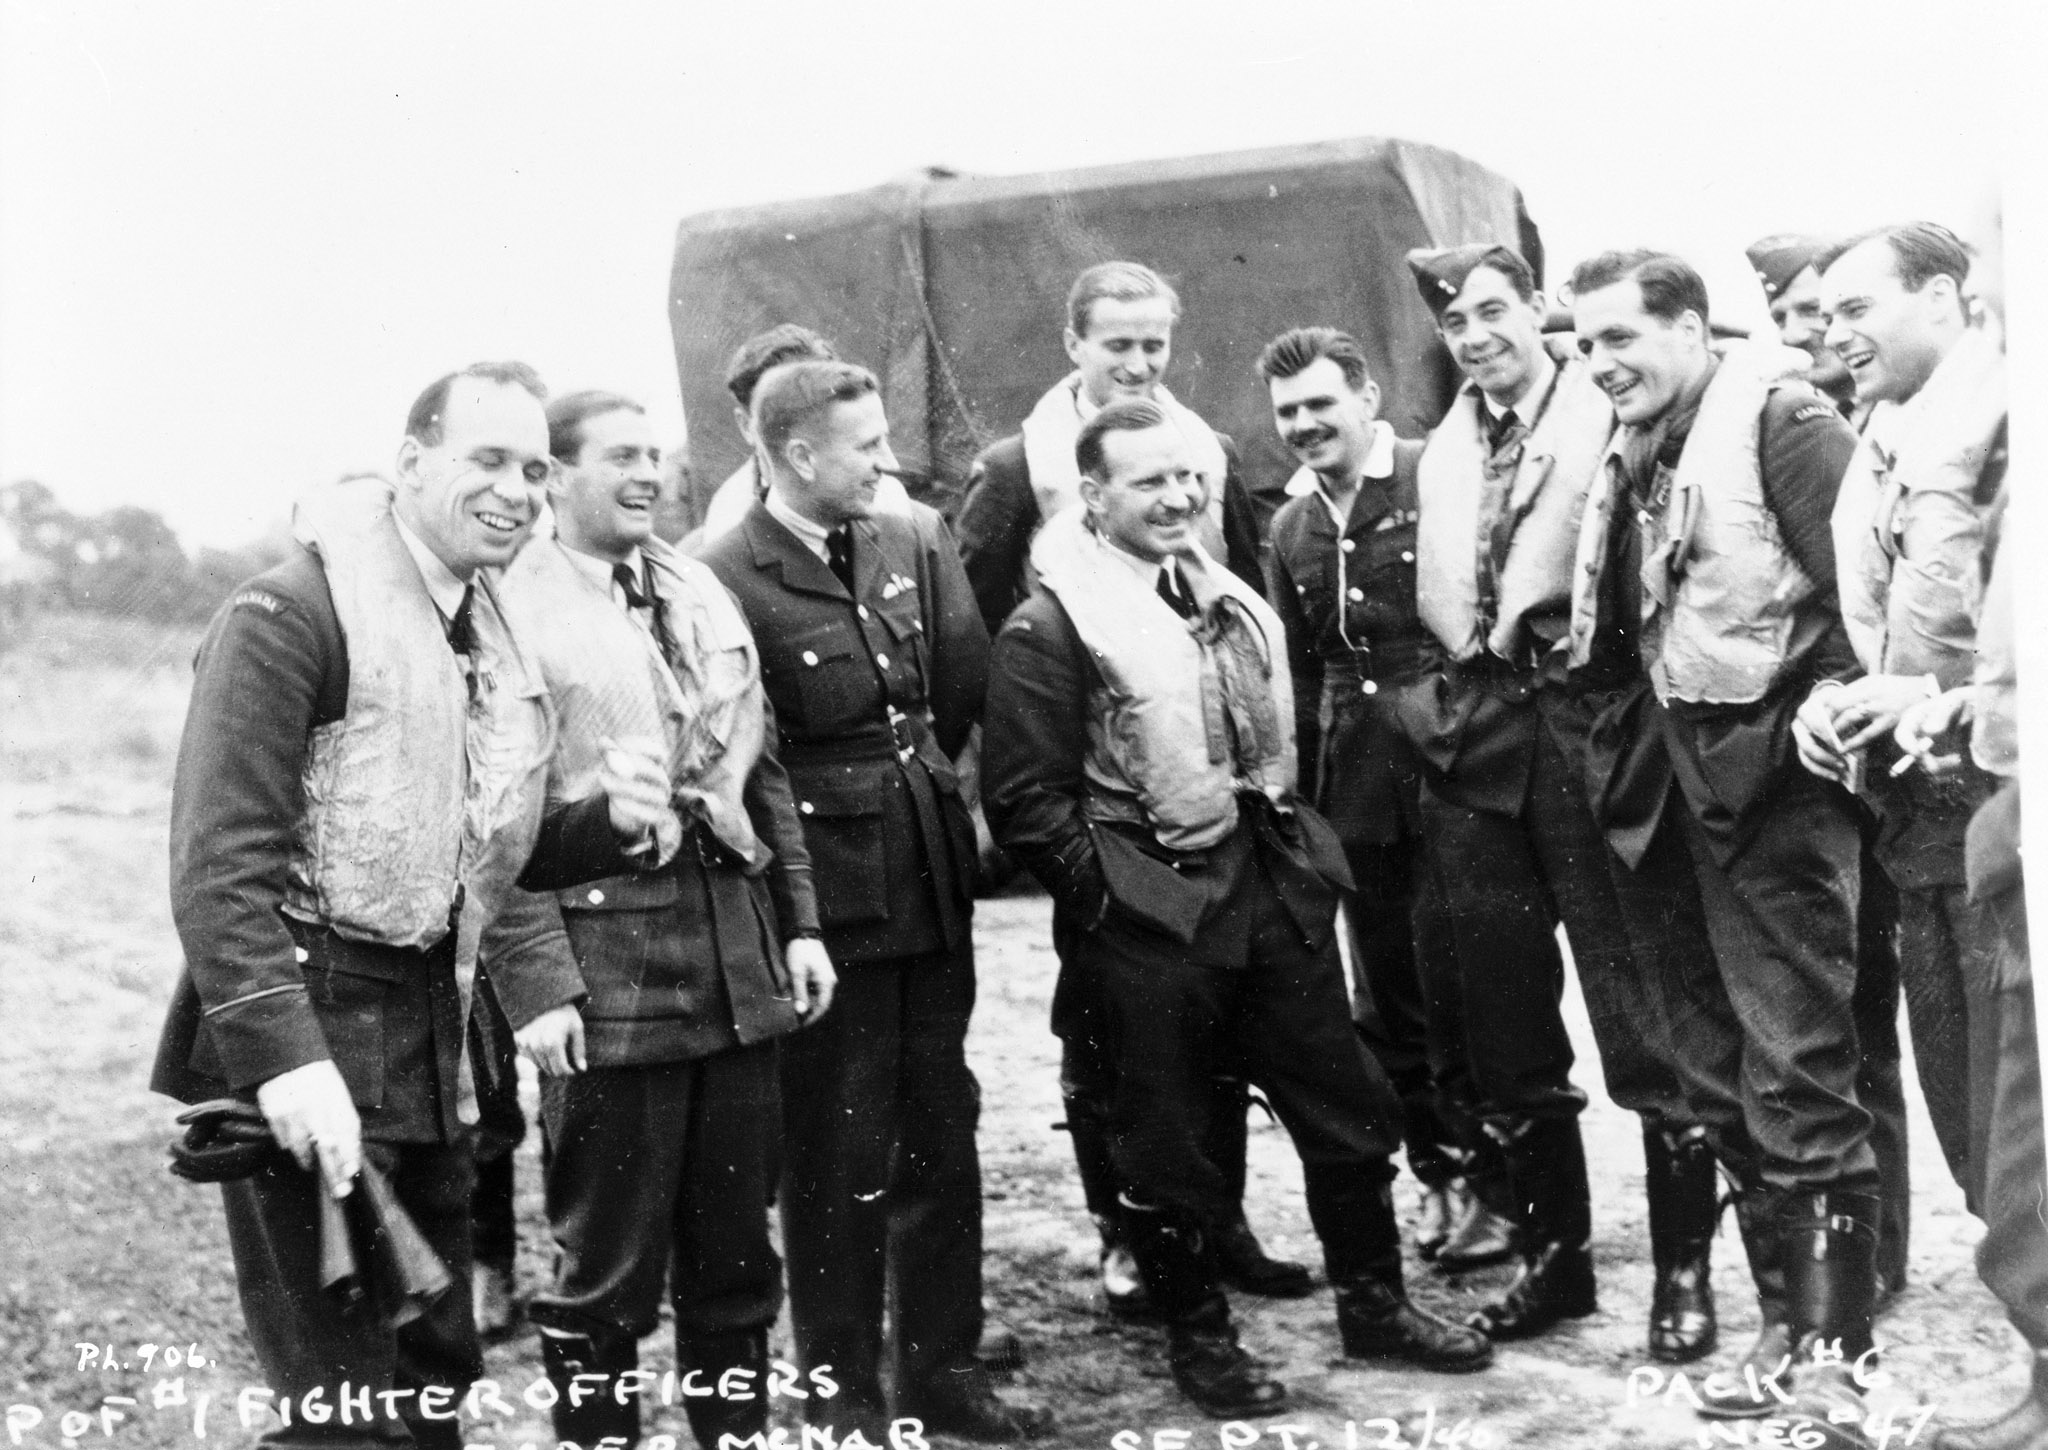 Le commandant d'aviation Ernest A. McNab et plusieurs de ses pilotes se détendent et posent pour la photo pendant la Bataille d'Angleterre (de gauche à droite) : le lieutenant d'aviation William P. Sprenger, le lieutenant d'aviation Otto John Peterson, le capitaine d'aviation W.R. Pollock (adjudant), le lieutenant d'aviation Paul Brooks Pitcher, le commandant d'aviation McNab, le lieutenant d'aviation Peter William Lochnan, le capitaine d'aviation Edwin Michael Reyno, le lieutenant d'aviation Eric Walter Beardmore, le lieutenant d'aviation S.T. Blaikloch (officier du renseignement) et le lieutenant d'aviation Robert William Norris. PHOTO : Bibliothèque et Archives Canada, PL-906